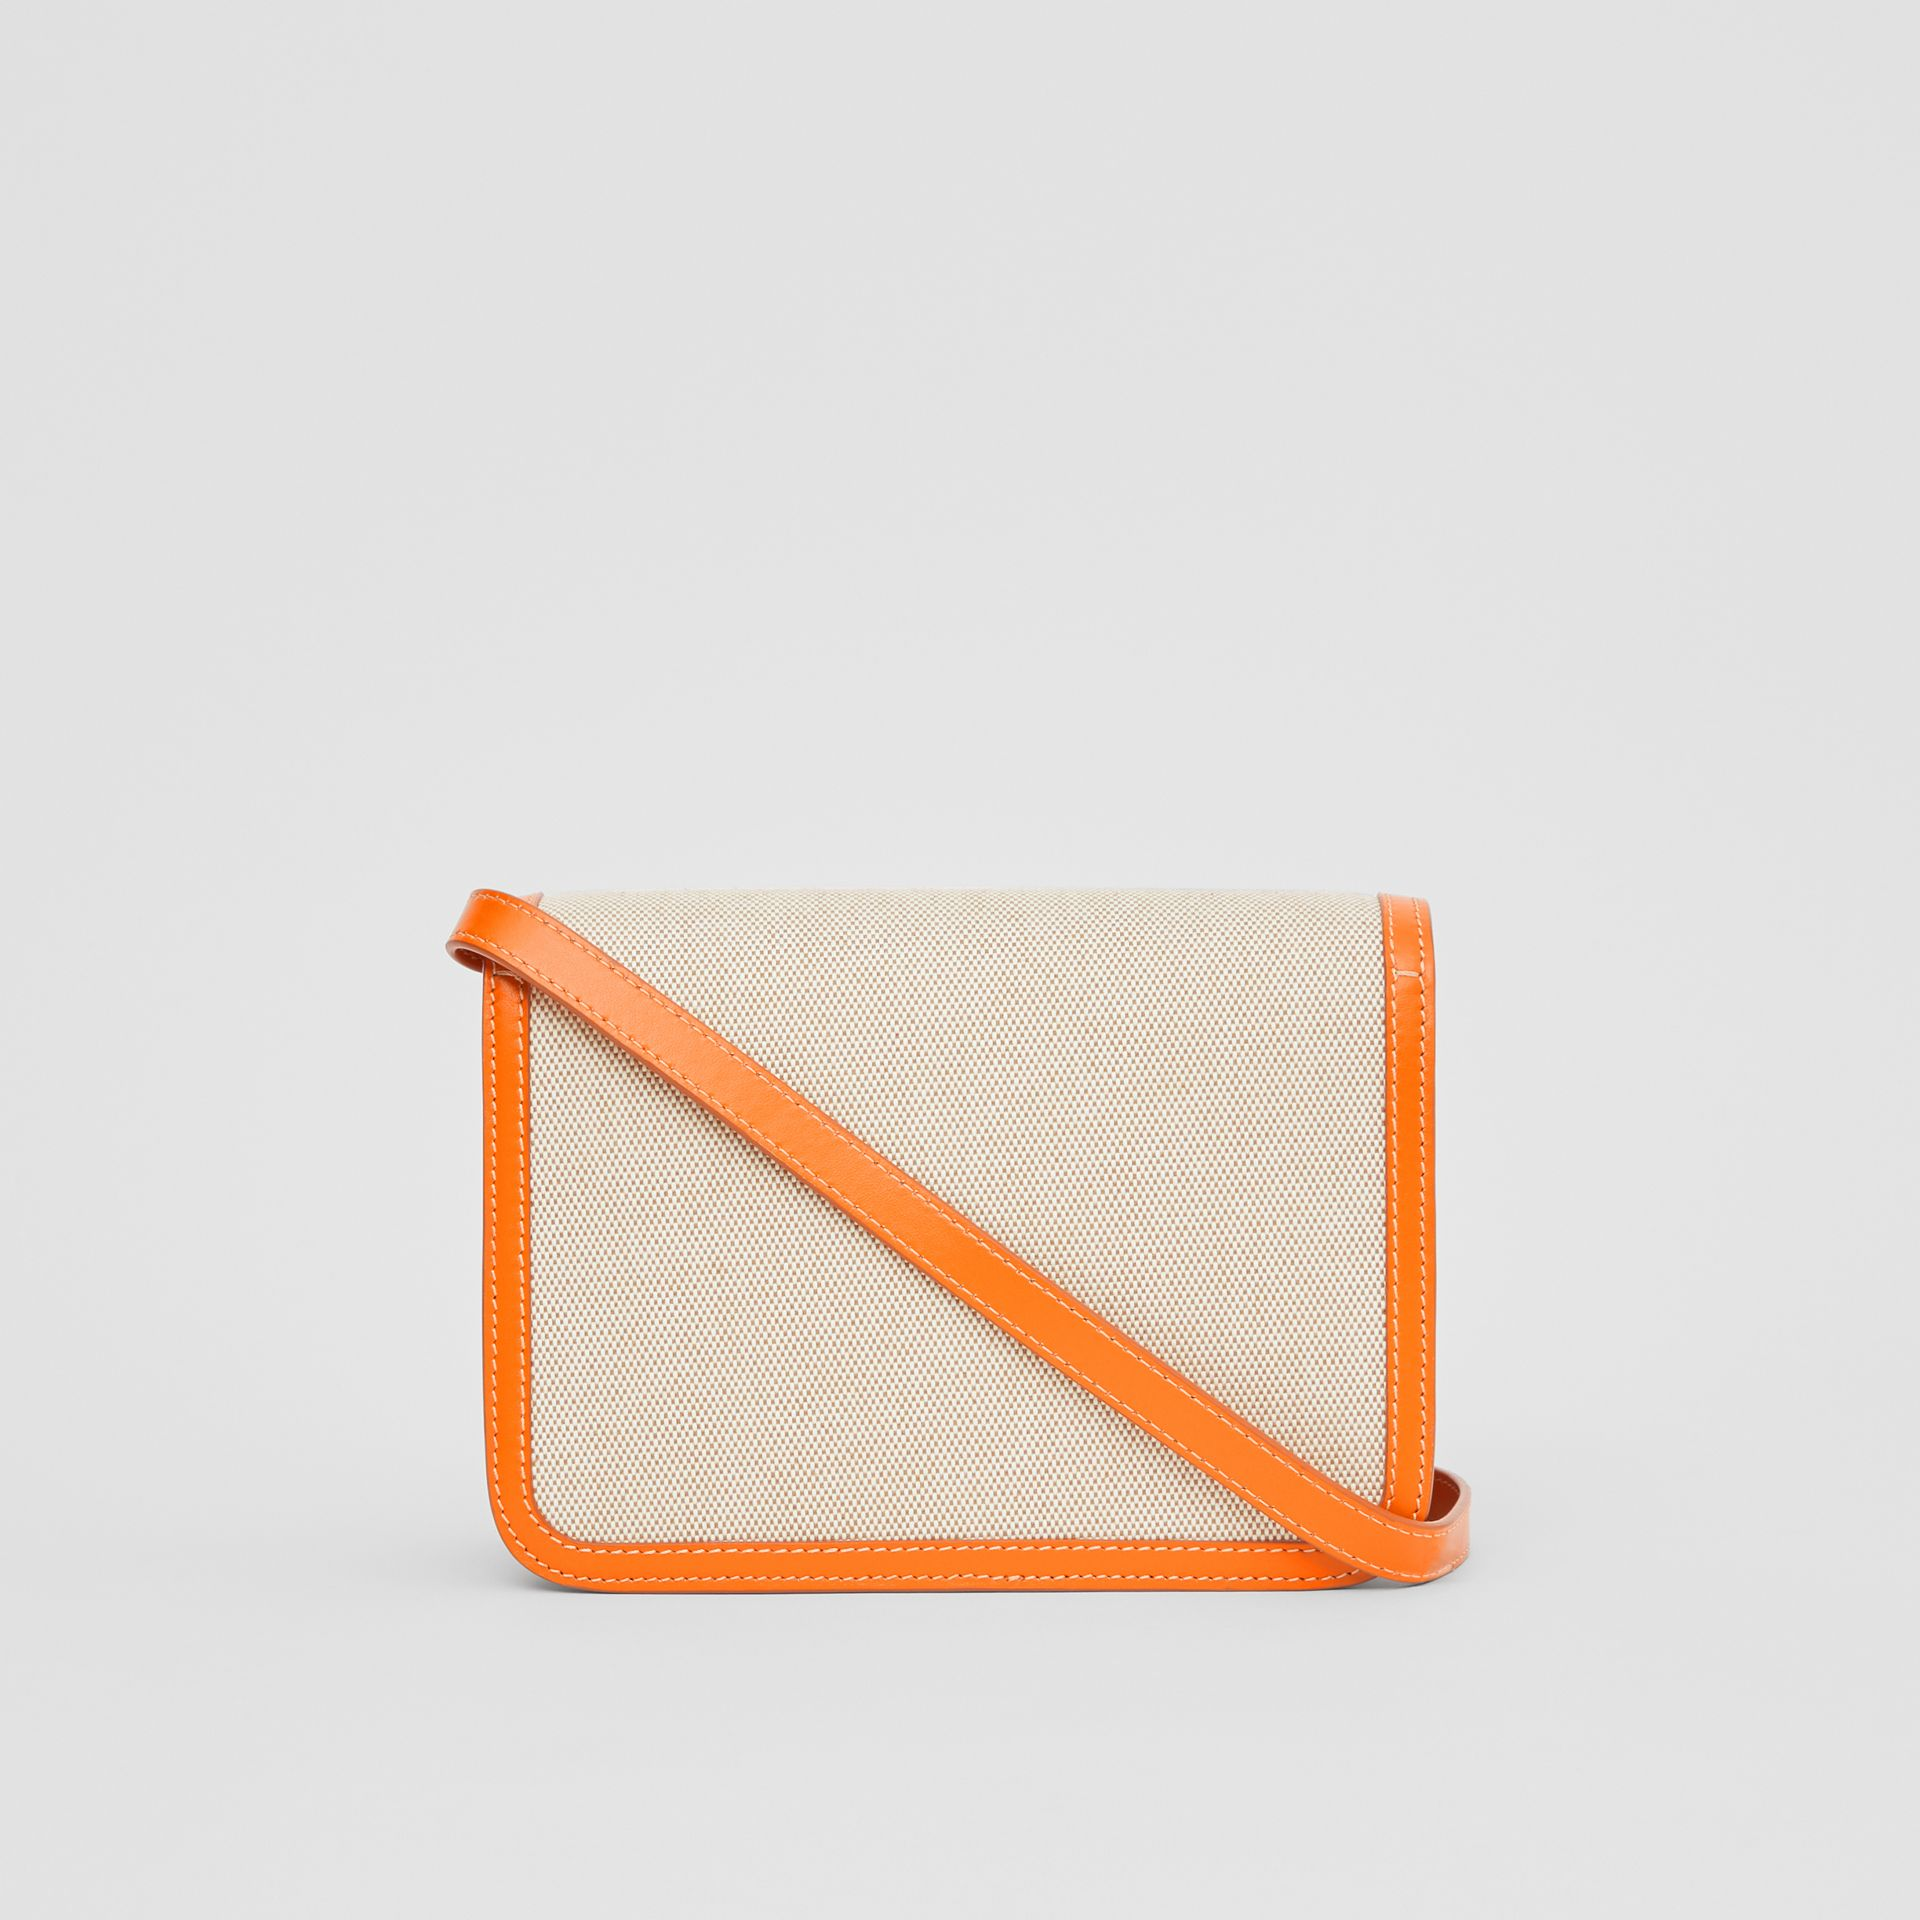 Small Two-tone Canvas and Leather TB Bag in Orange - Women | Burberry - gallery image 5